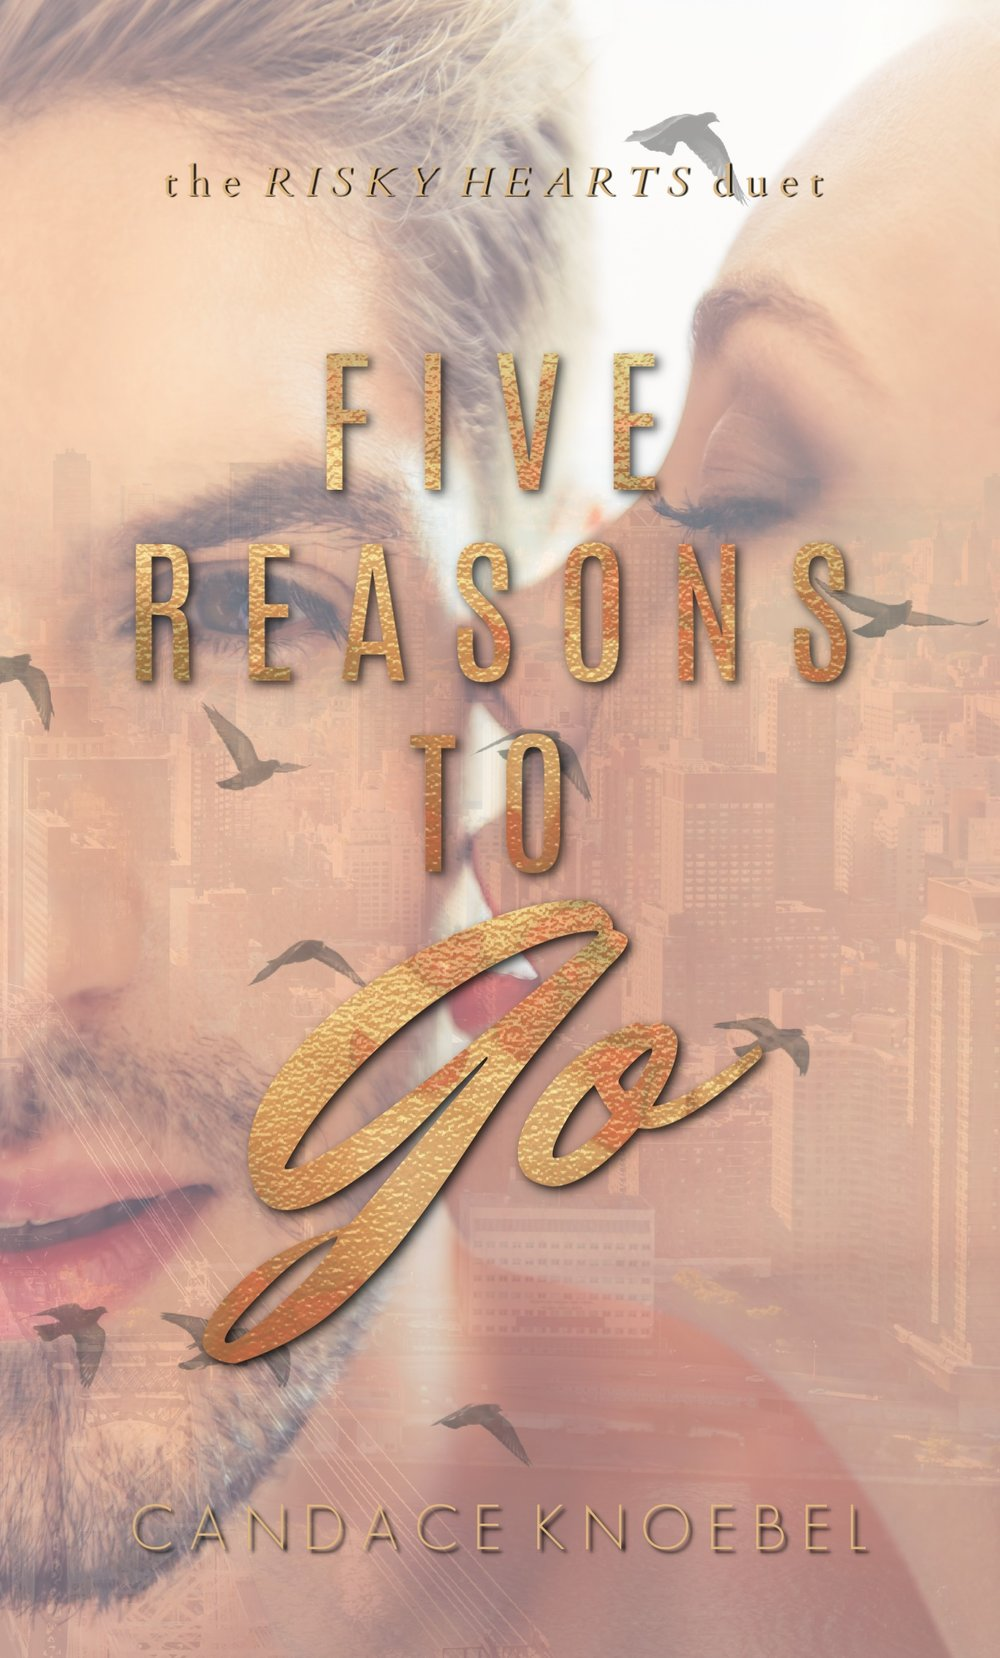 FIVE REASONS TO GO by Candace Knoebel